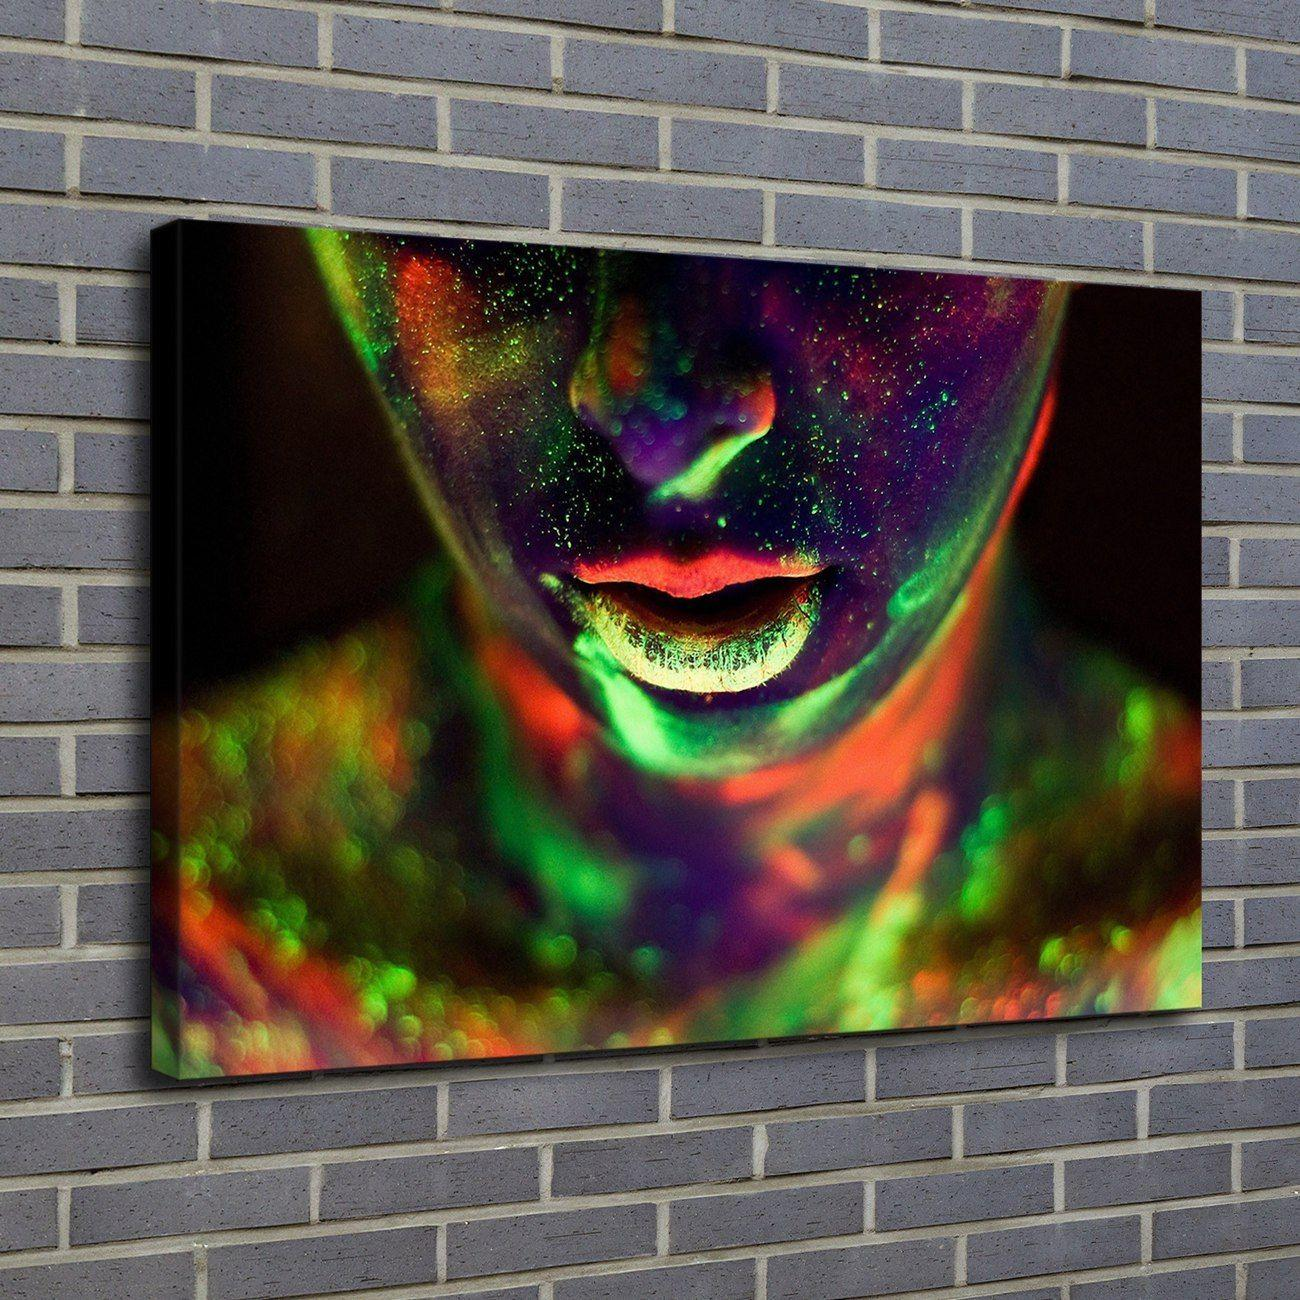 1 Pieces Home Decor HD Printed Modern Art Painting on Canvas Body Paint Face Poster (Unframed/Framed)